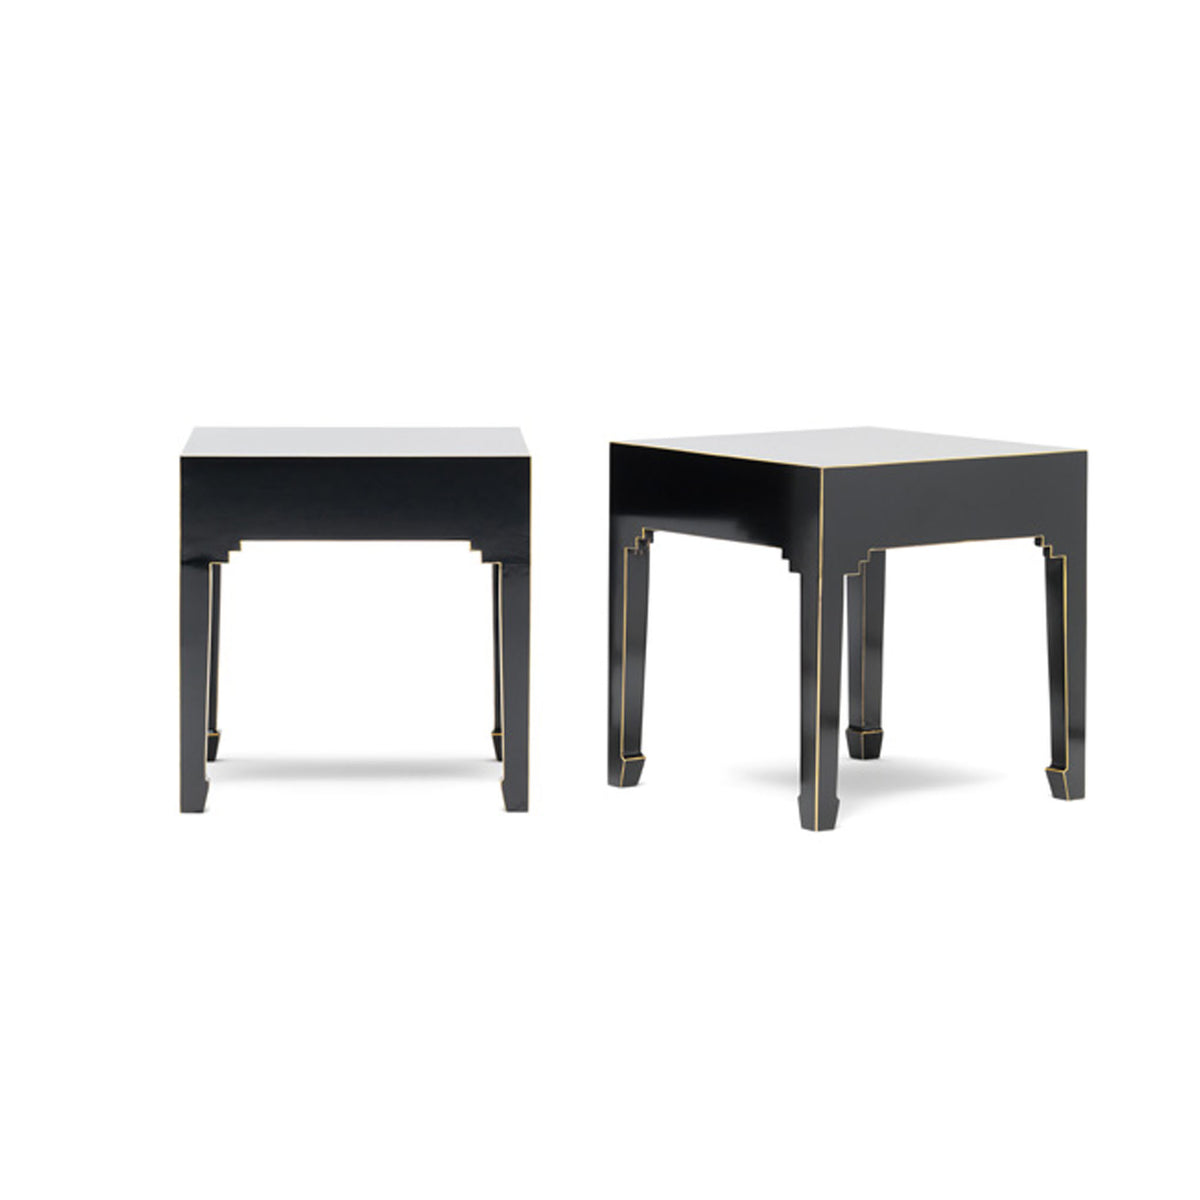 The Nine Schools Black Pair of Lamp Tables by Roseland Furniture